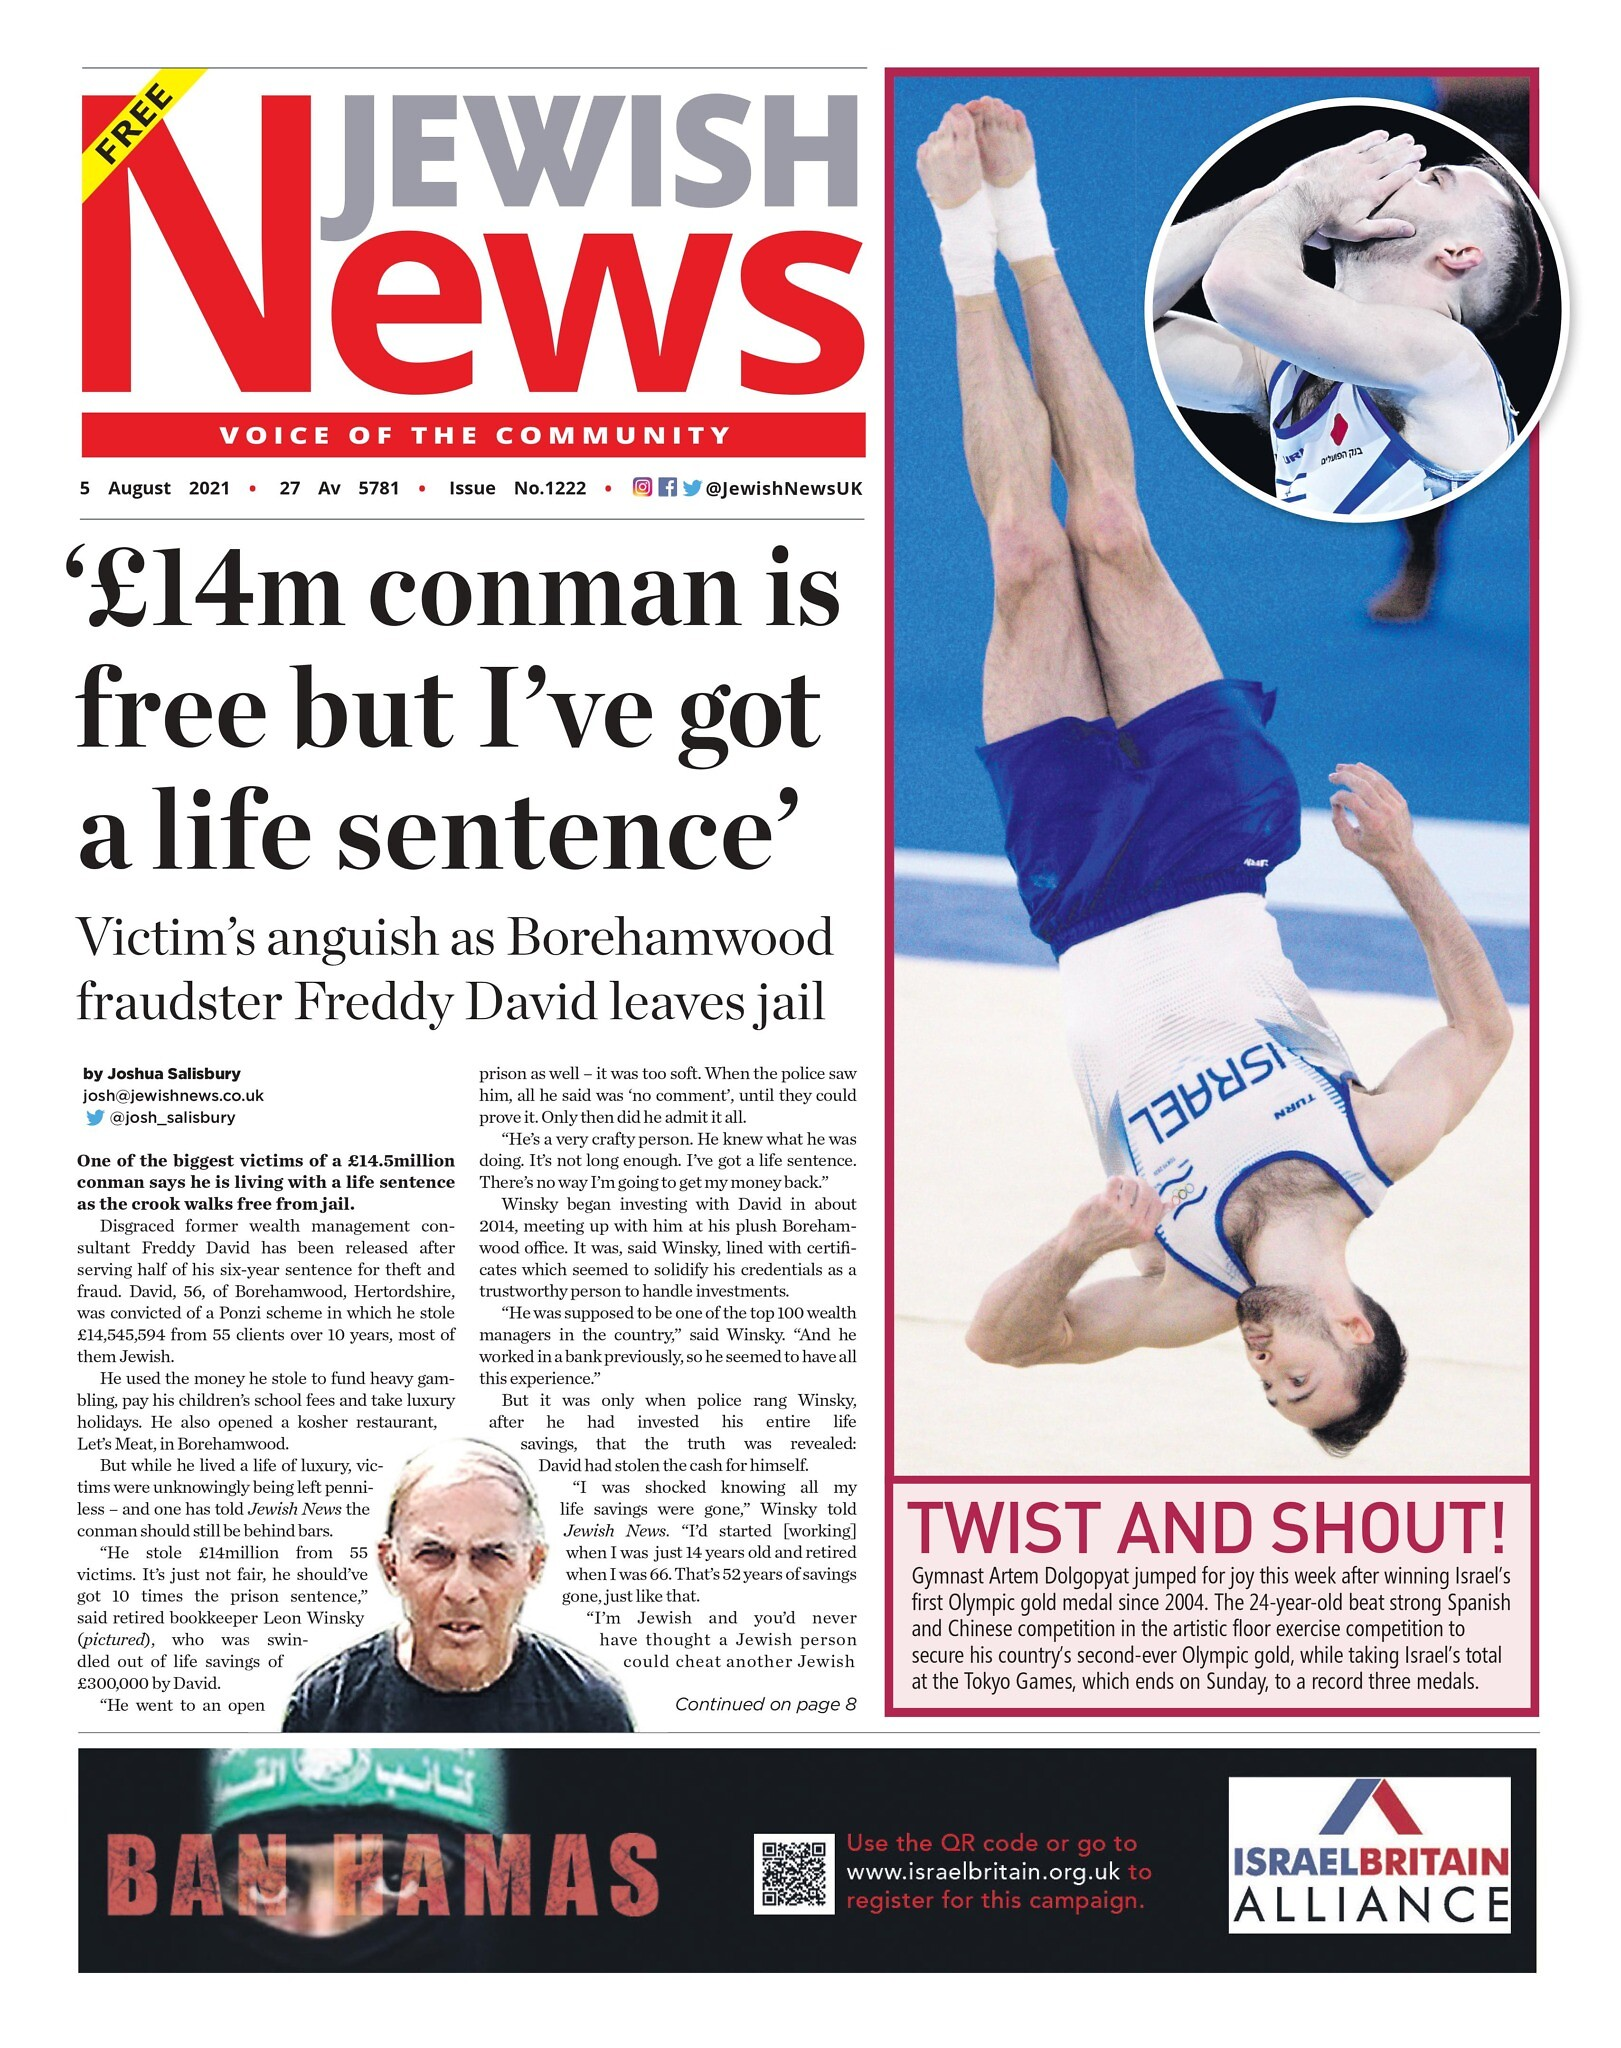 This week's Jewish News front page